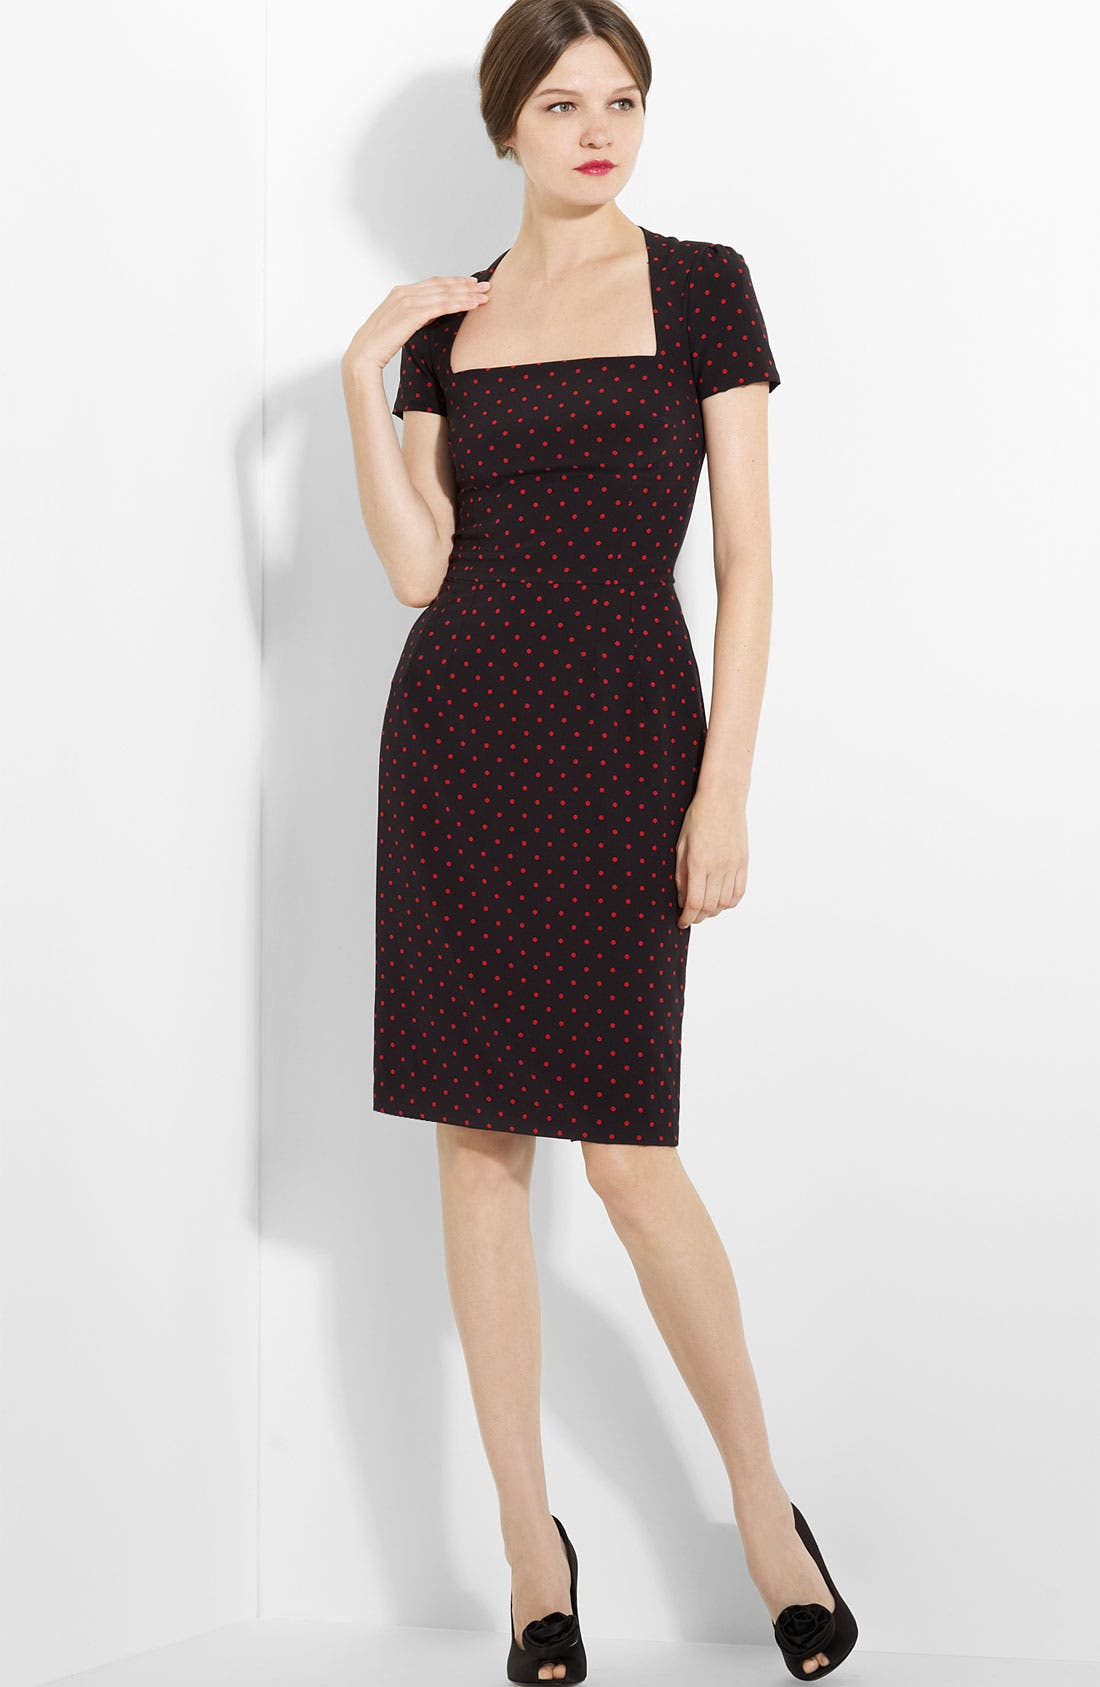 Main Image - Dolce&Gabbana Polka Dot Stretch Charmeuse Dress